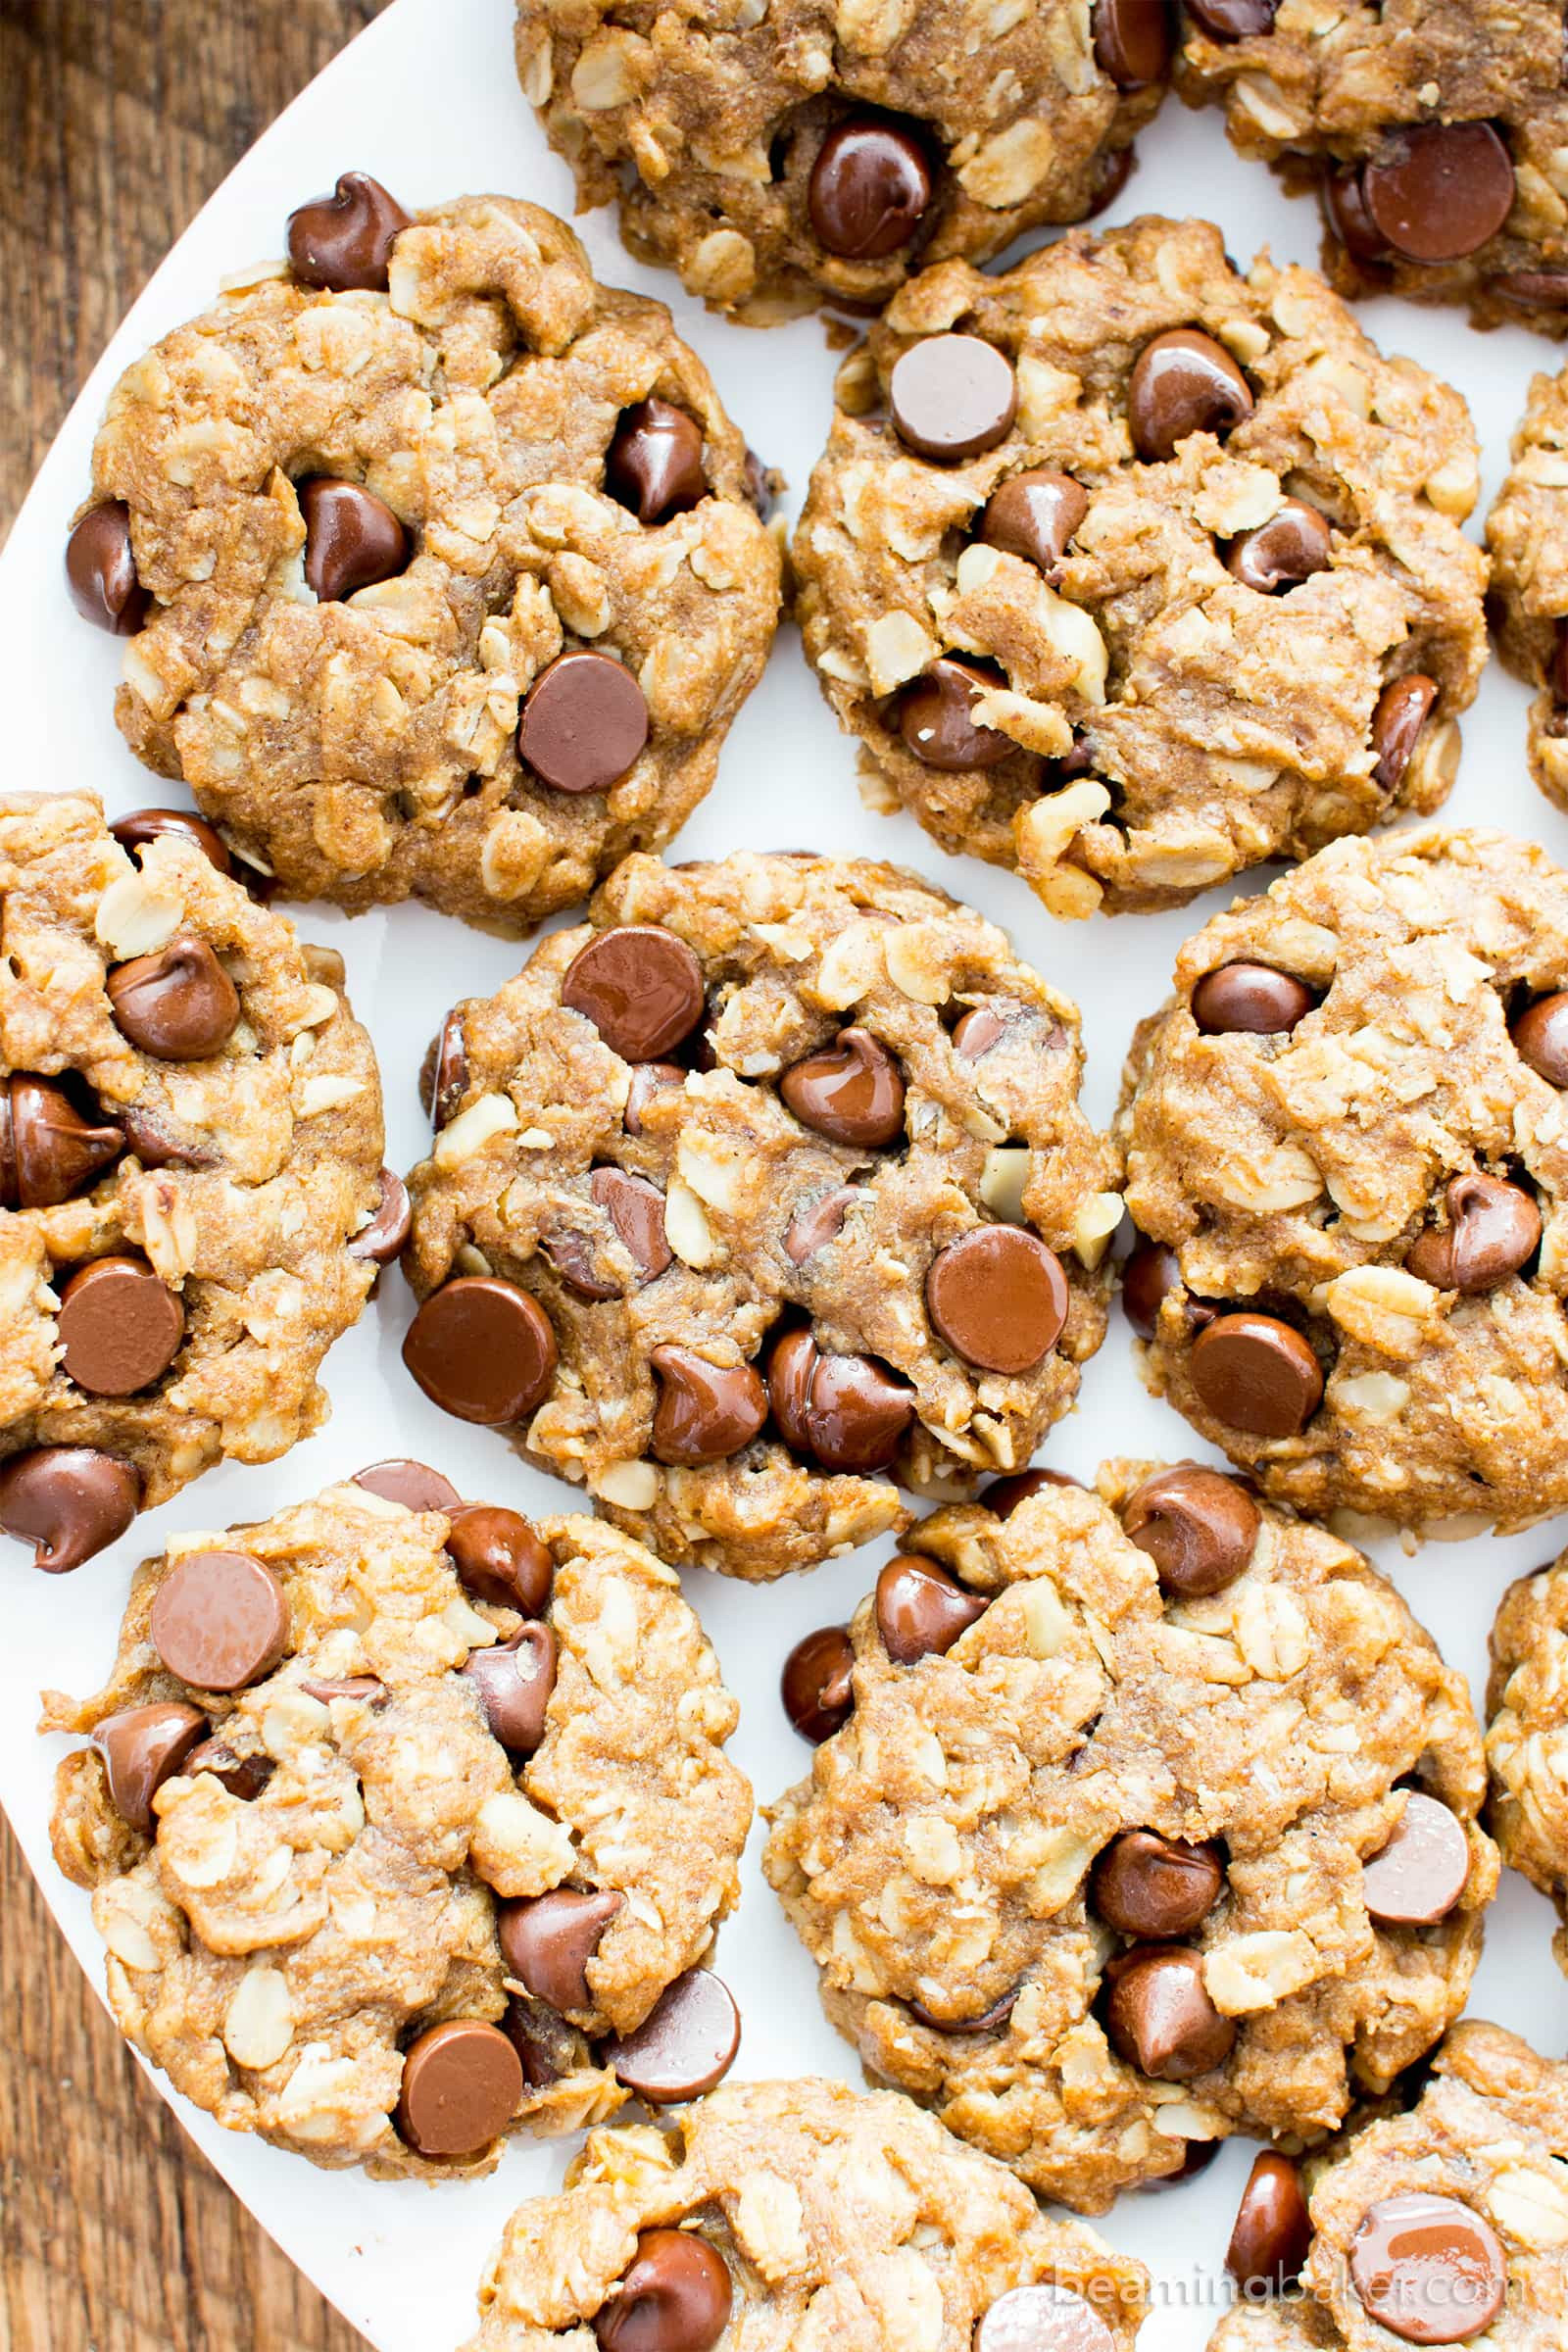 Easy Healthy Peanut Butter Cookies  Easy Gluten Free Peanut Butter Chocolate Chip Oatmeal